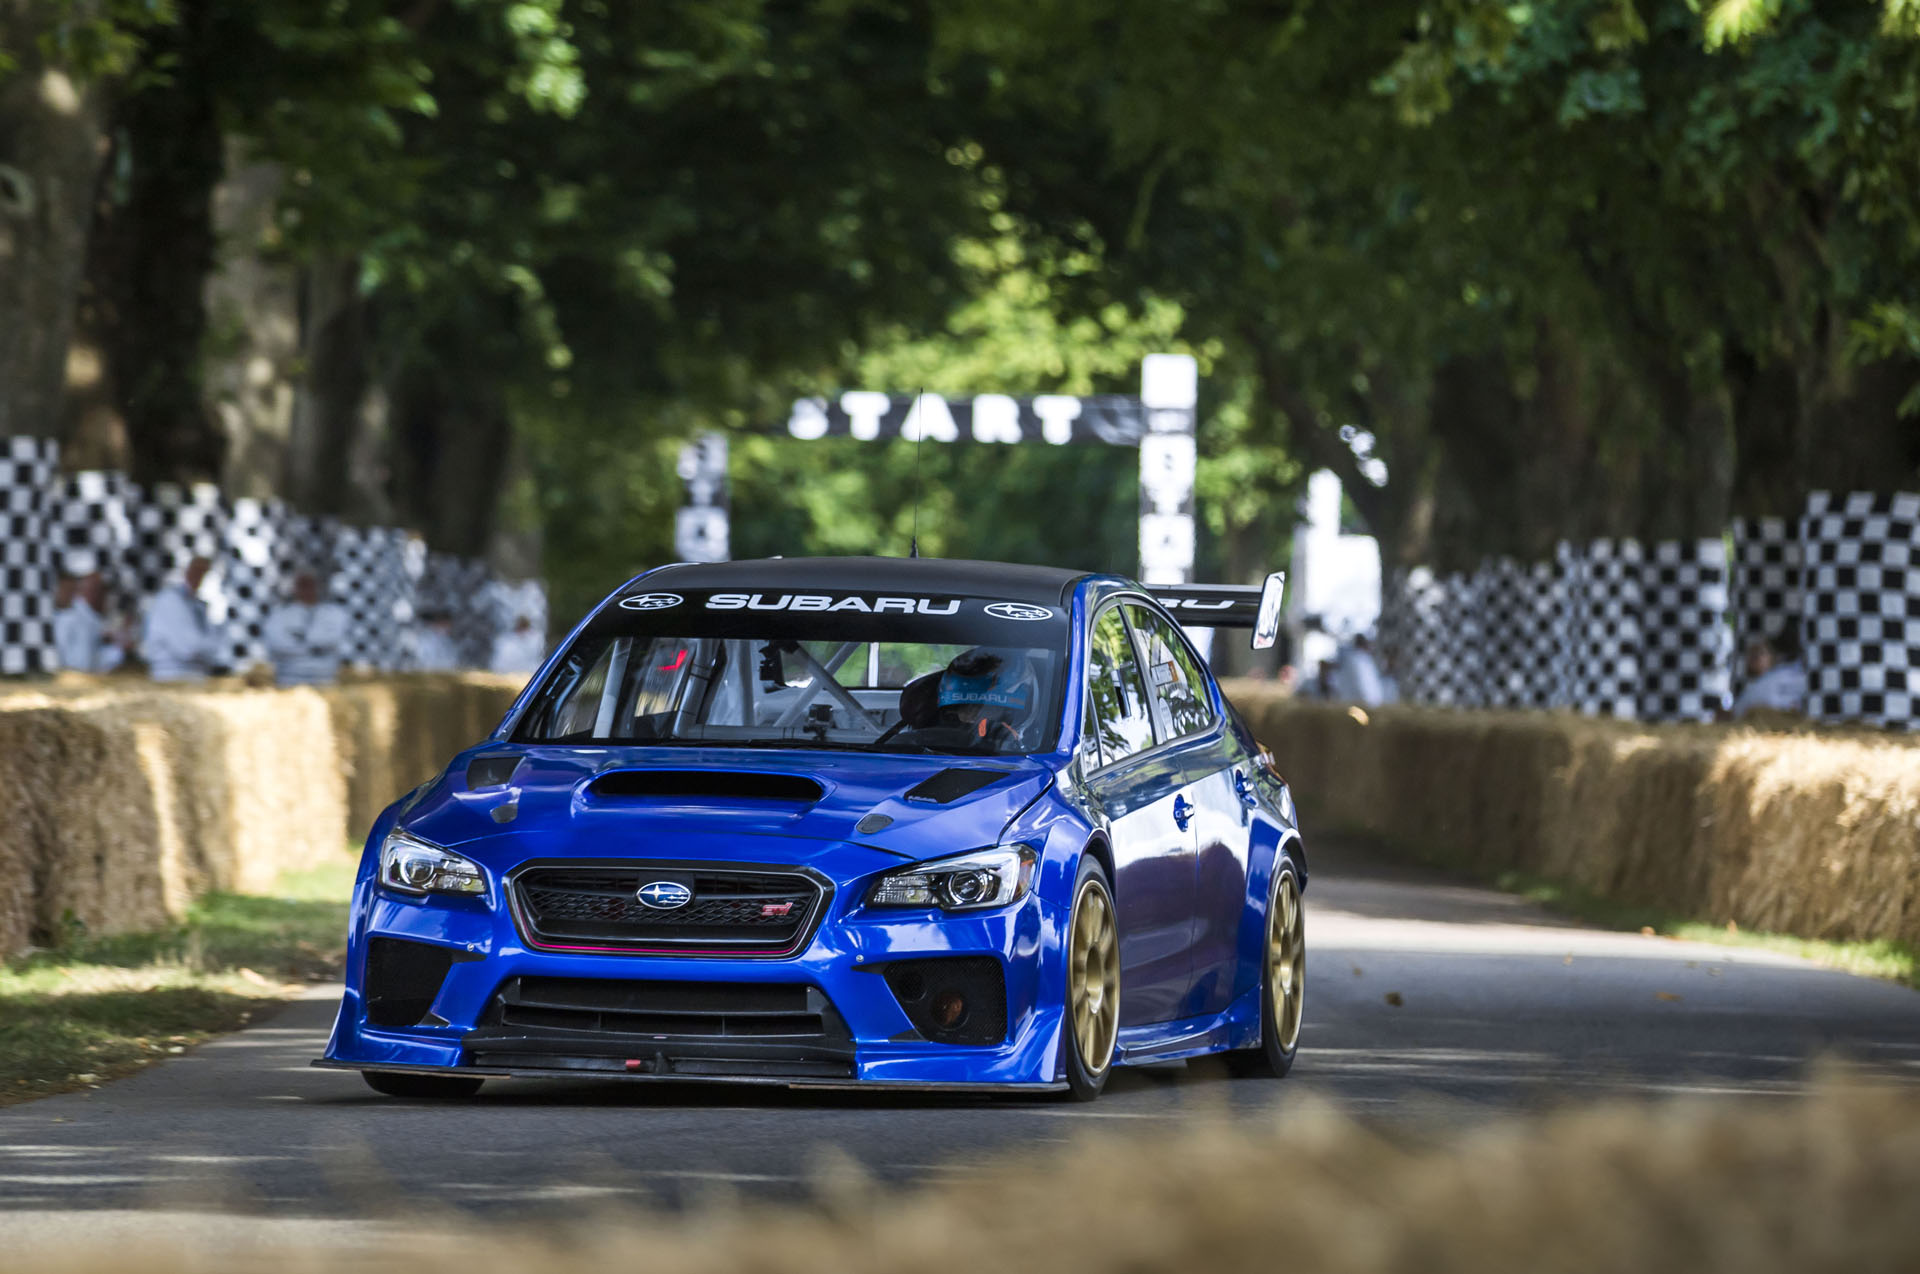 The Engineering Behind The Subaru Wrx Sti Type Ra Nbr